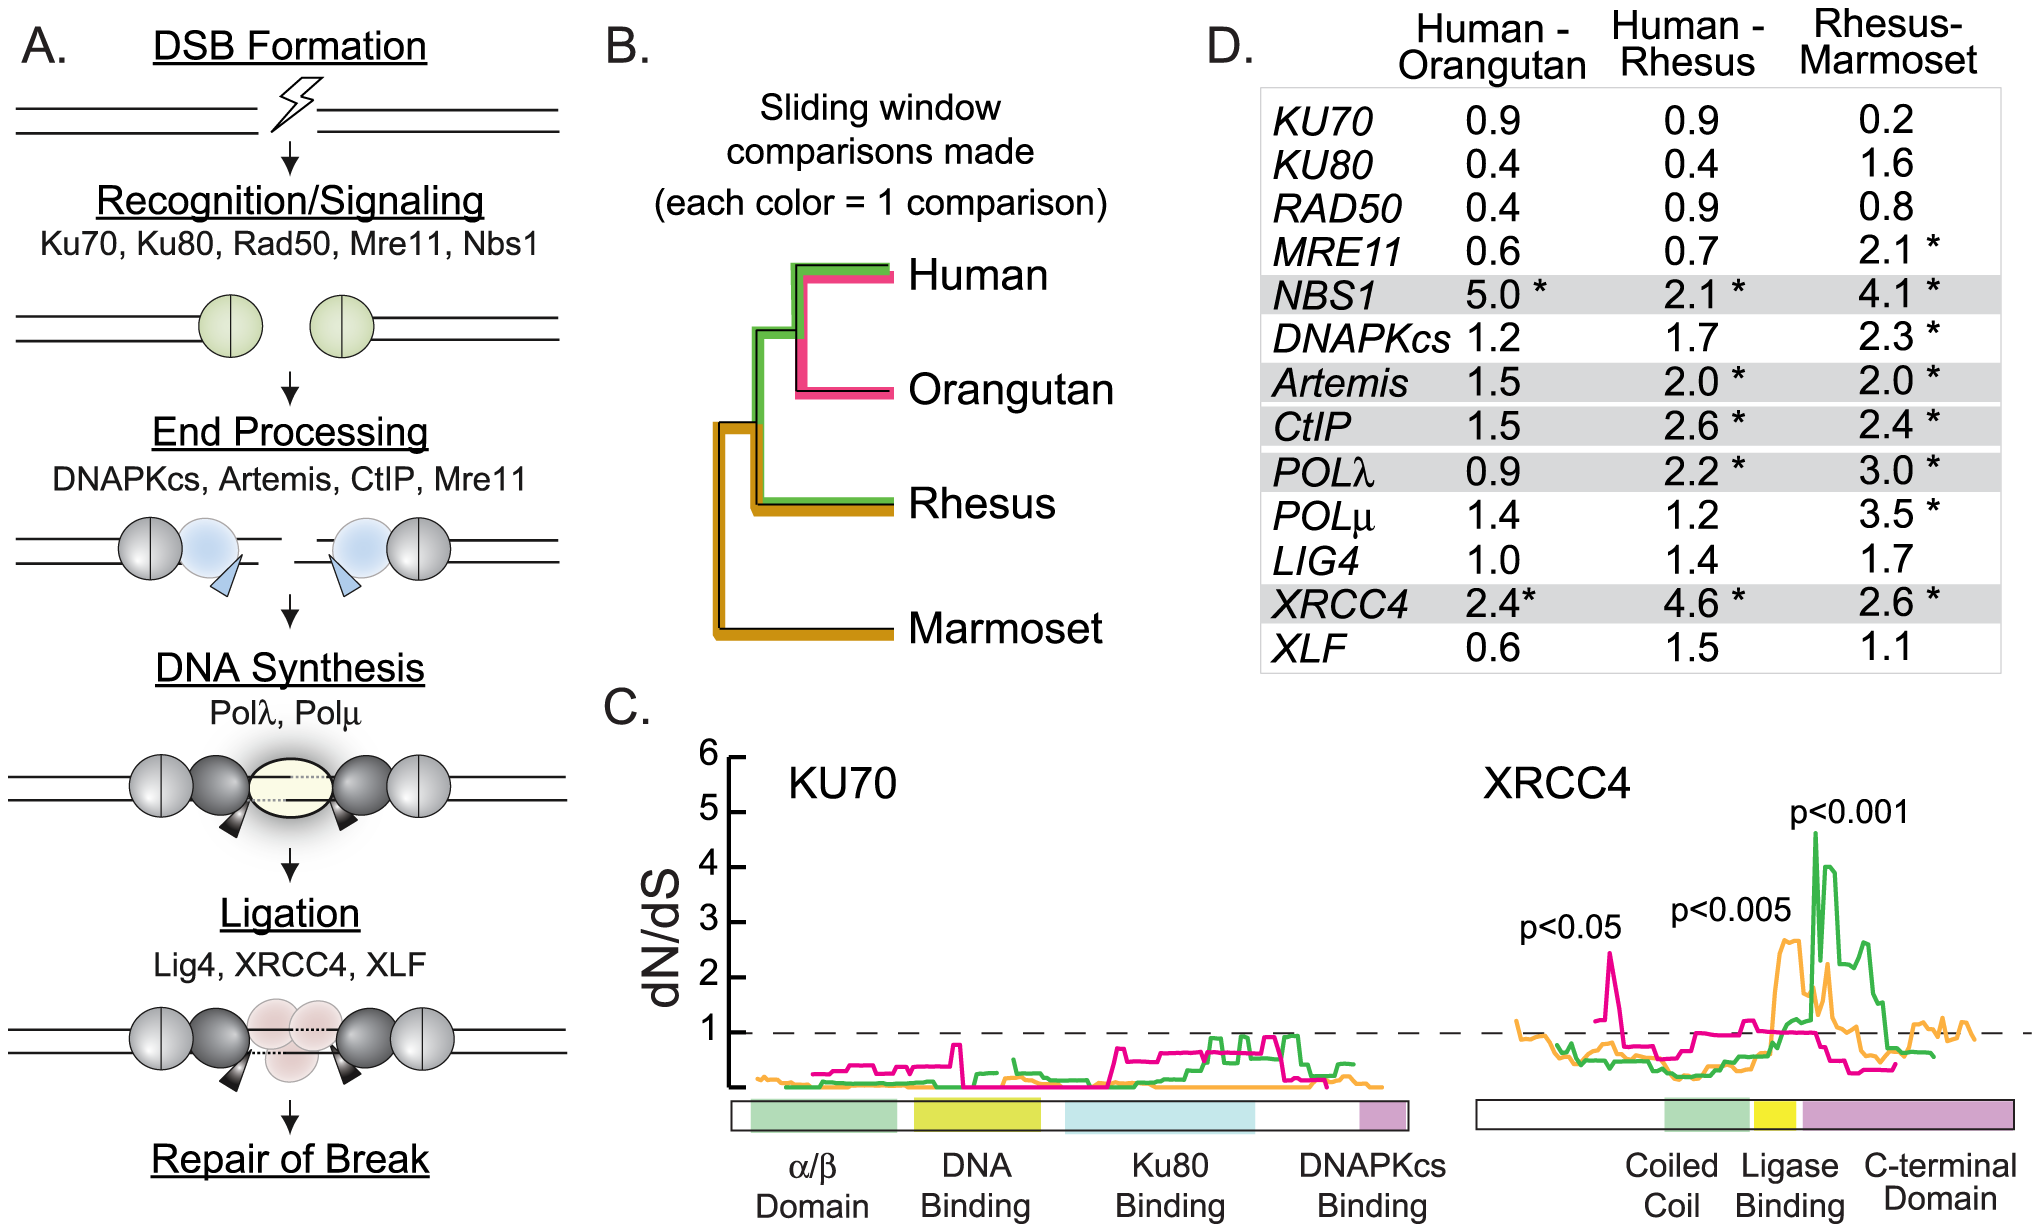 Sliding window analysis identifies five candidate NHEJ genes evolving under positive selection.